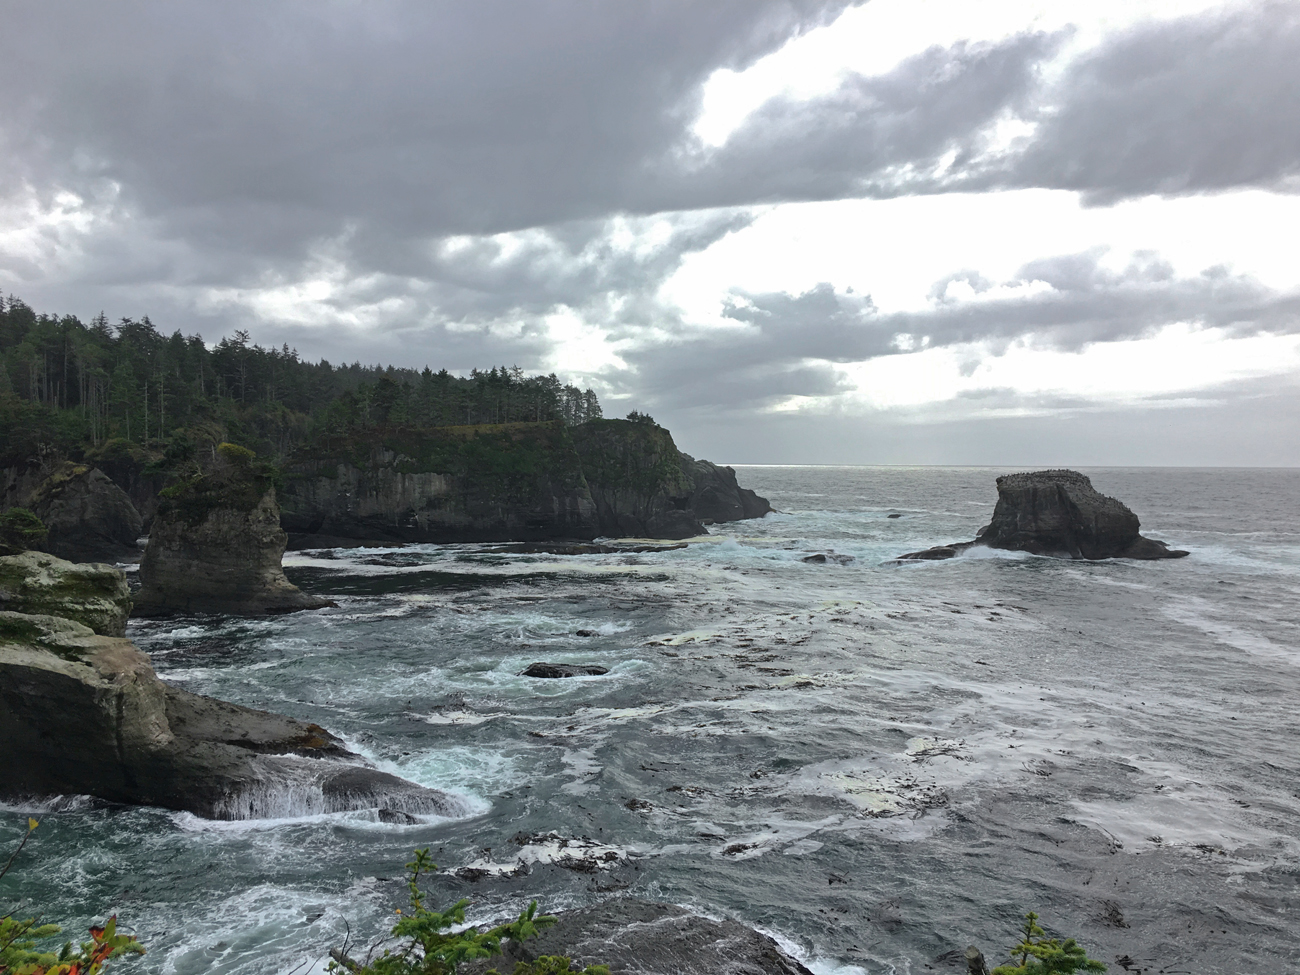 View of rocky coastline and sea stacks off shore from Cape Flattery